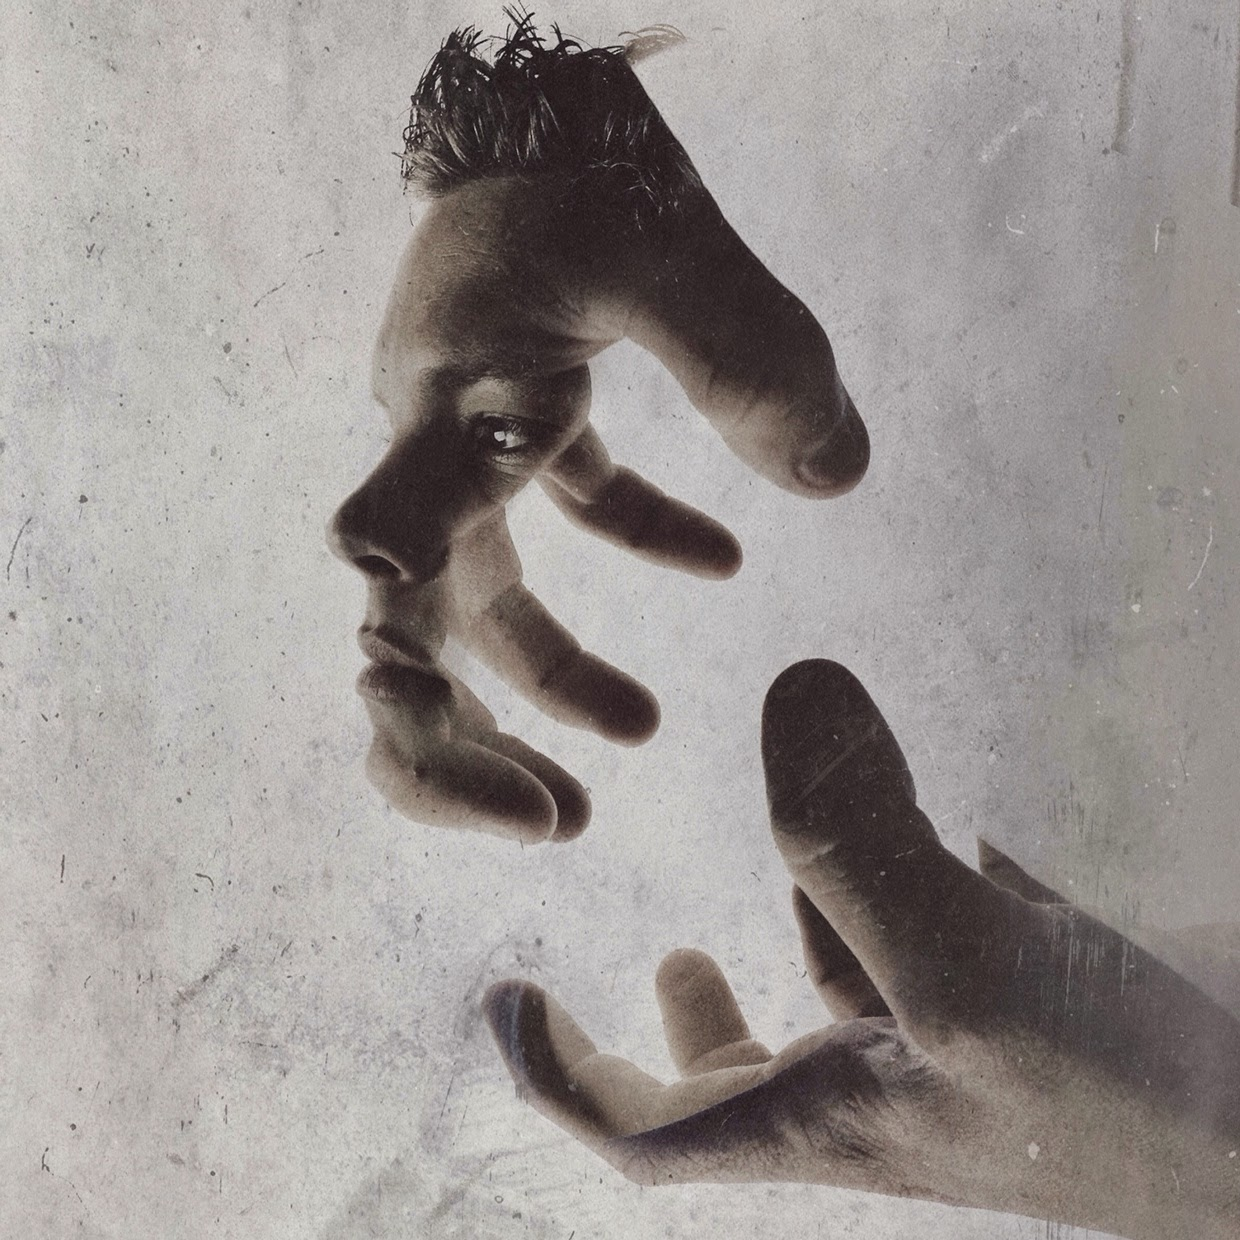 01-Brandon-Kidwell-Stories-in-Double-Exposure-Portrait-Photographs-www-designstack-co